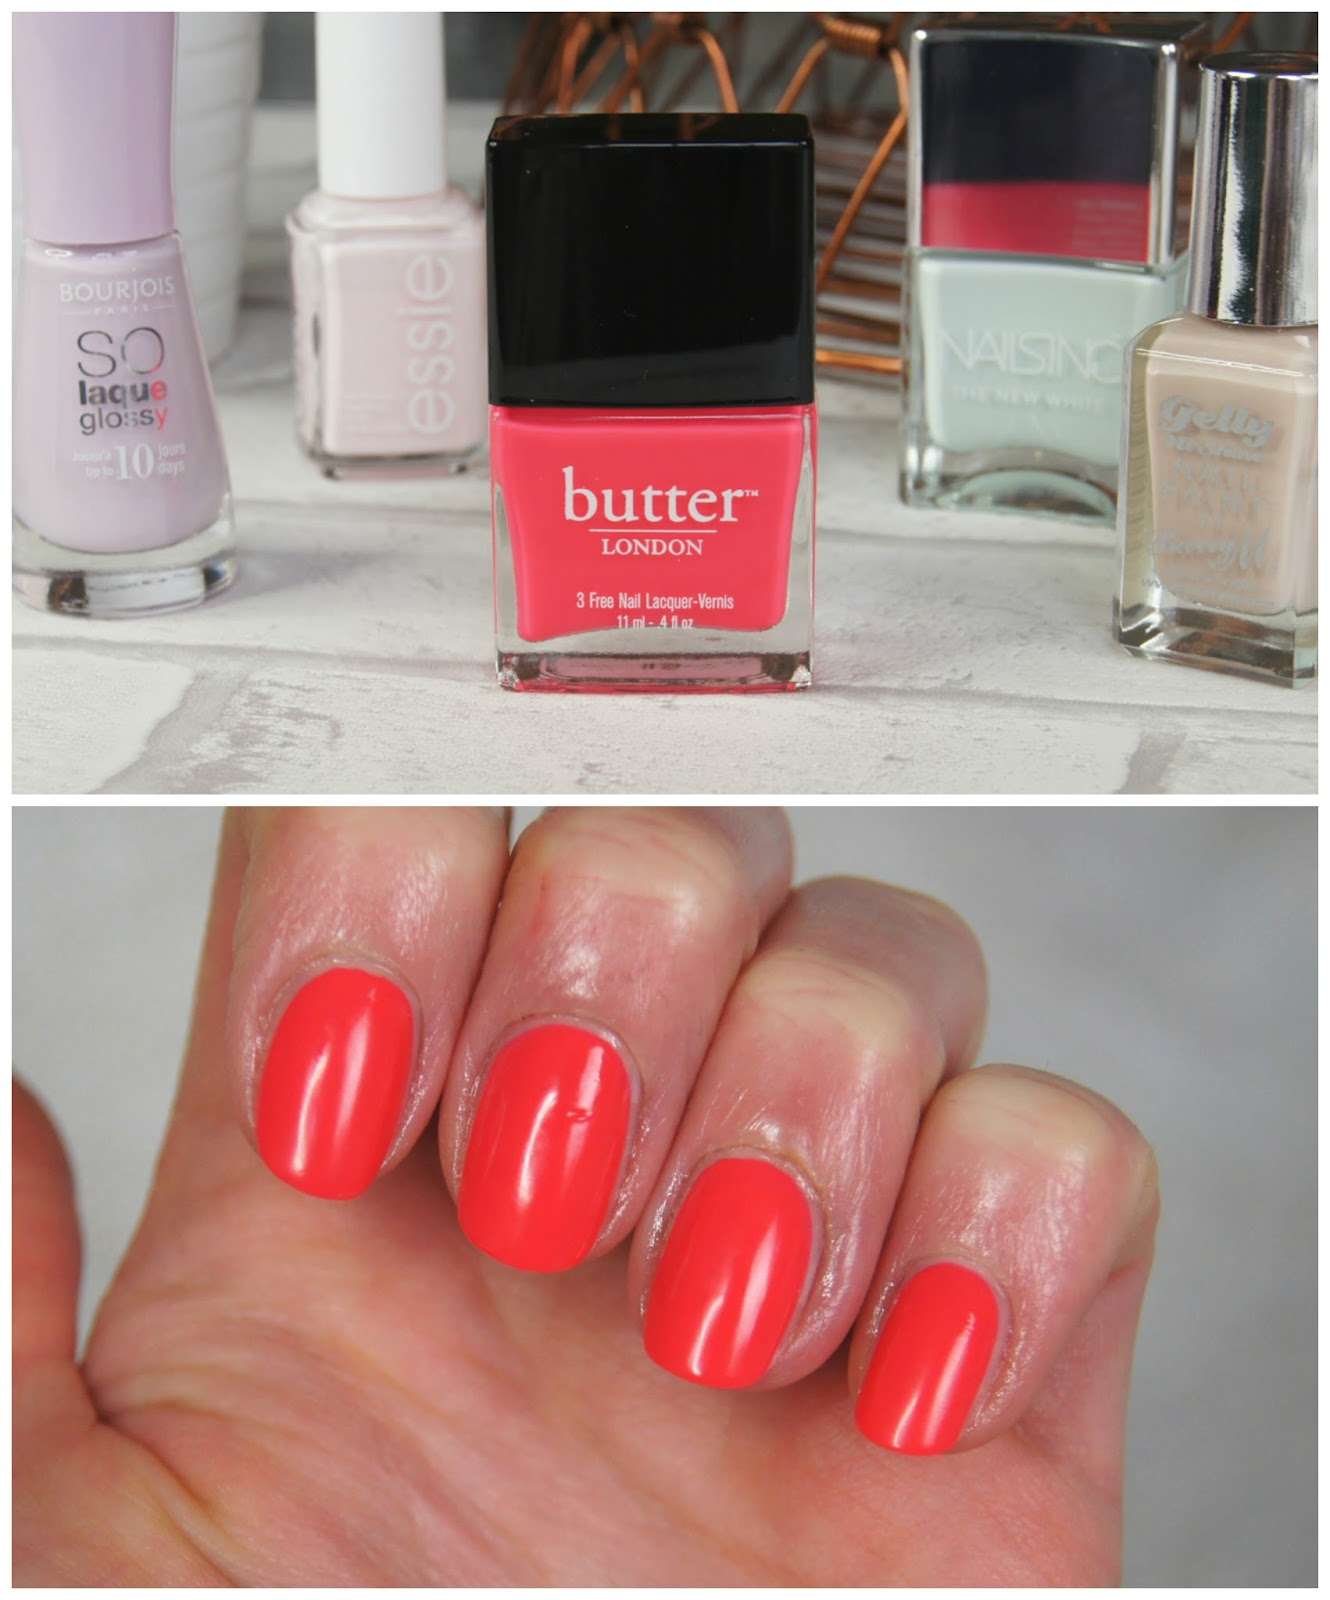 butter london cake-hole nail polish review swatch spring bright neon pink